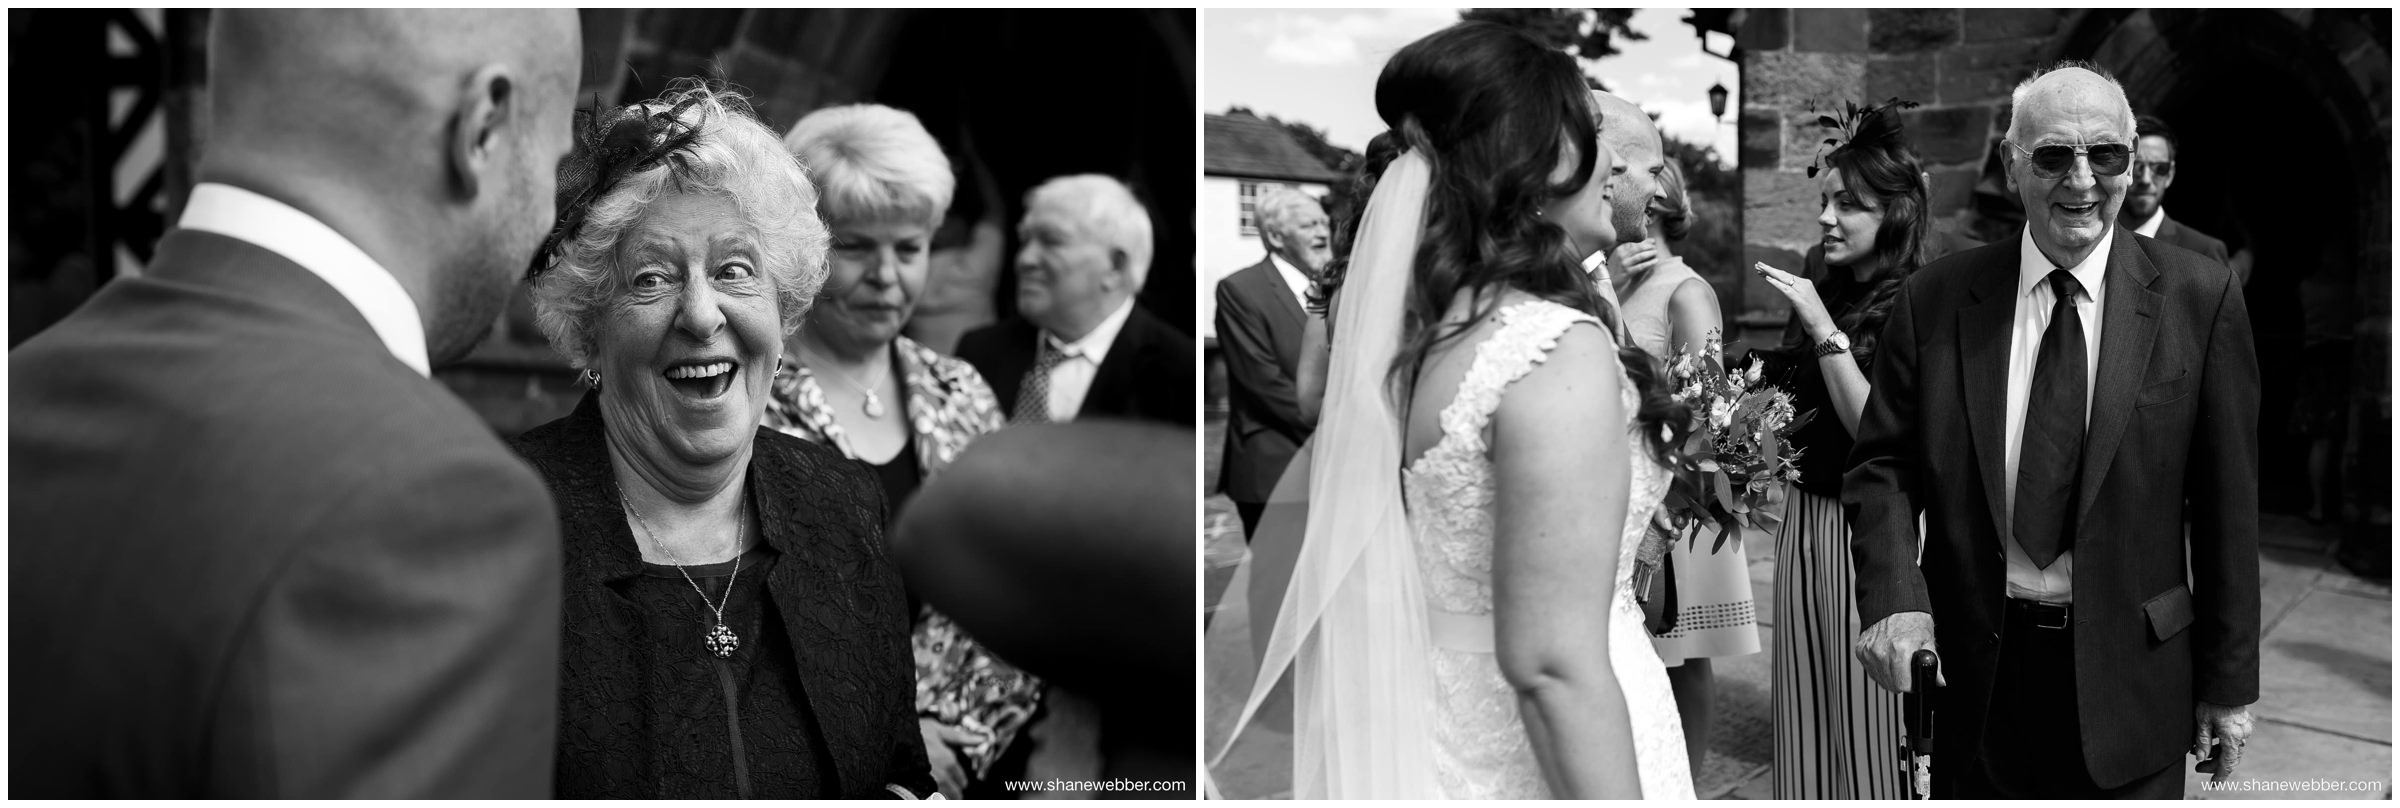 Black and white natural wedding photos